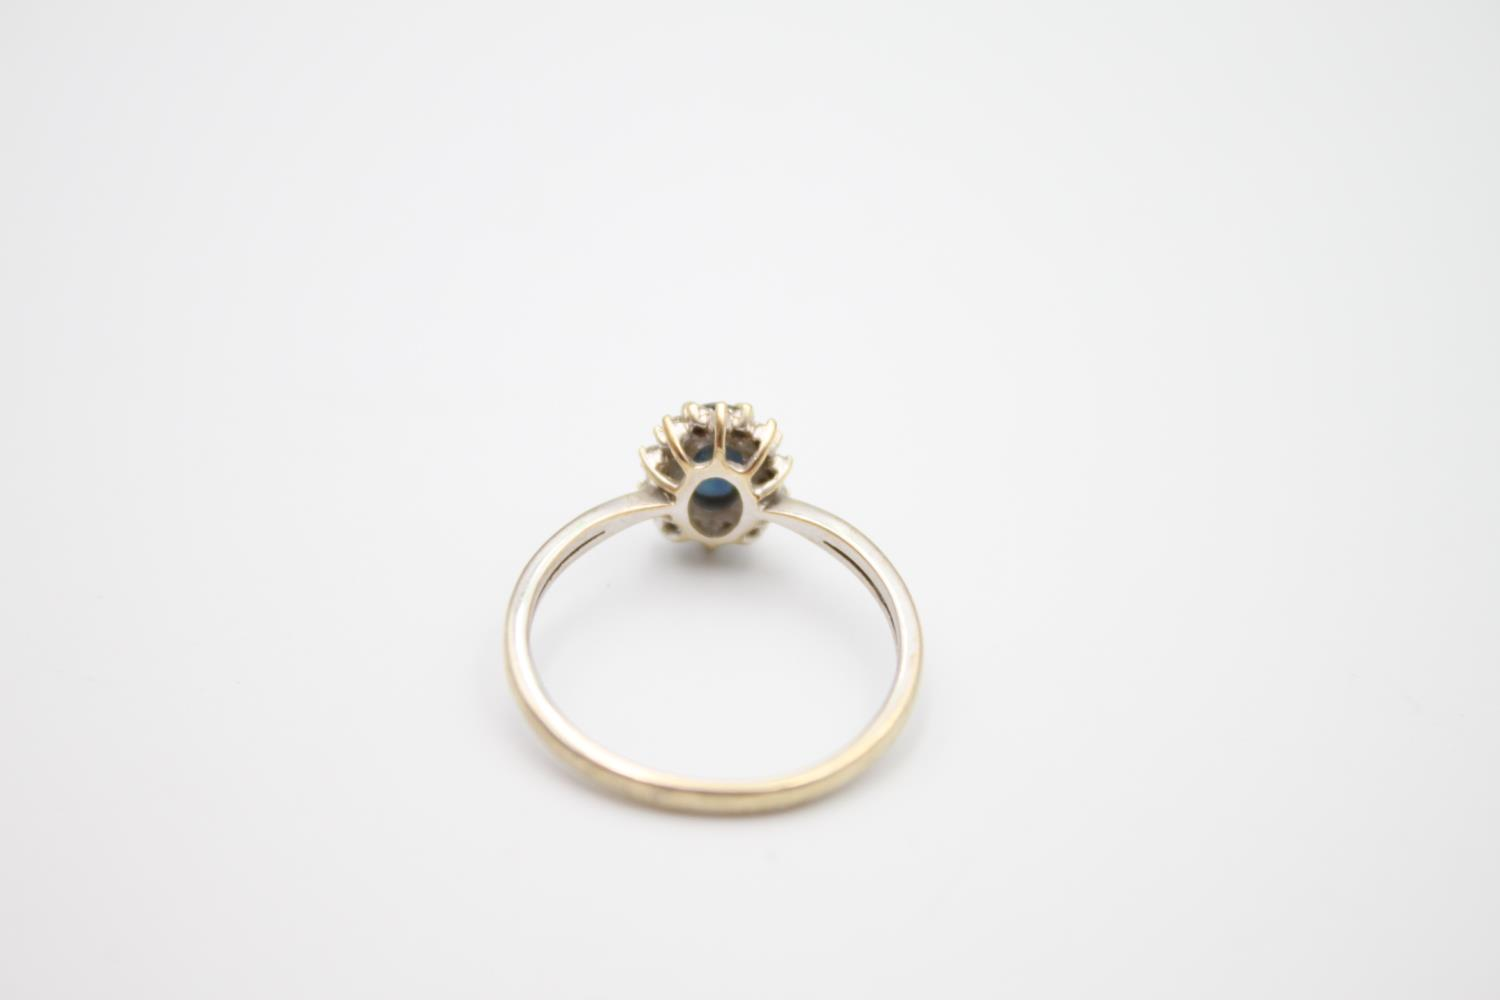 vintage 9ct gold sapphire & diamond halo ring 1.7g Size M - Image 5 of 5